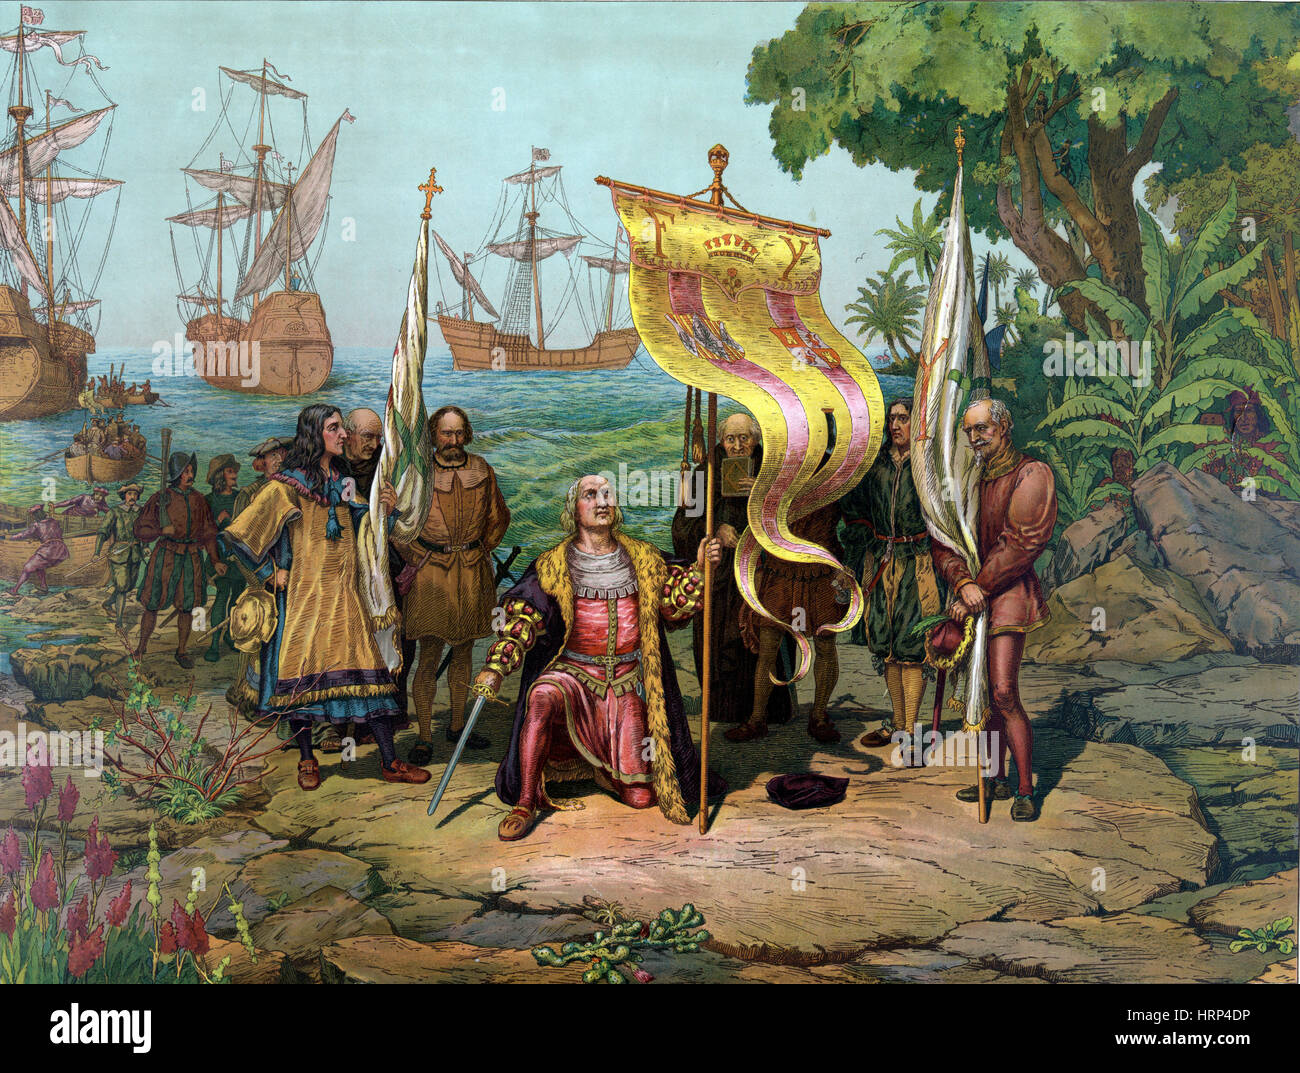 Christopher Columbus Landing in New World, 1492